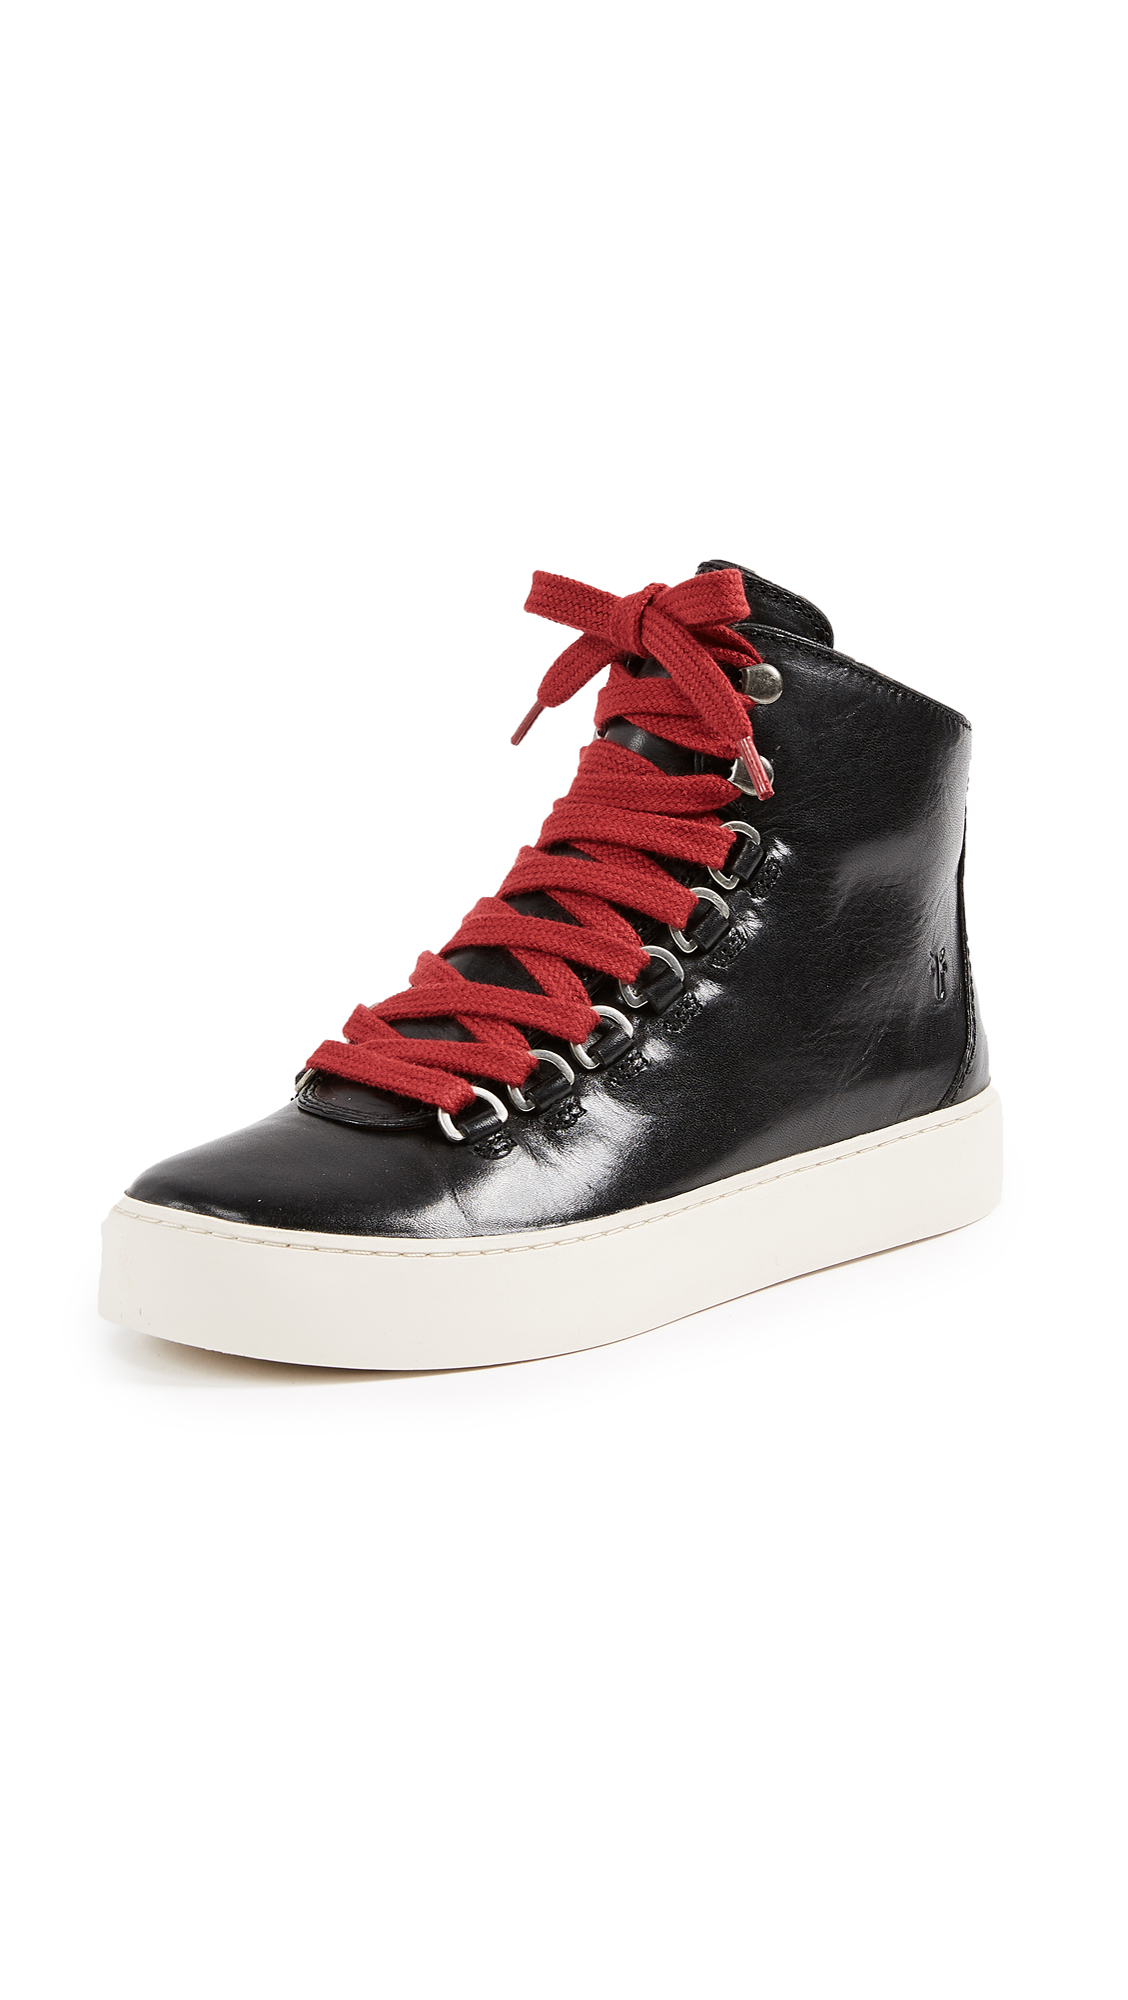 Frye Lena Hiker Sneakers - Black